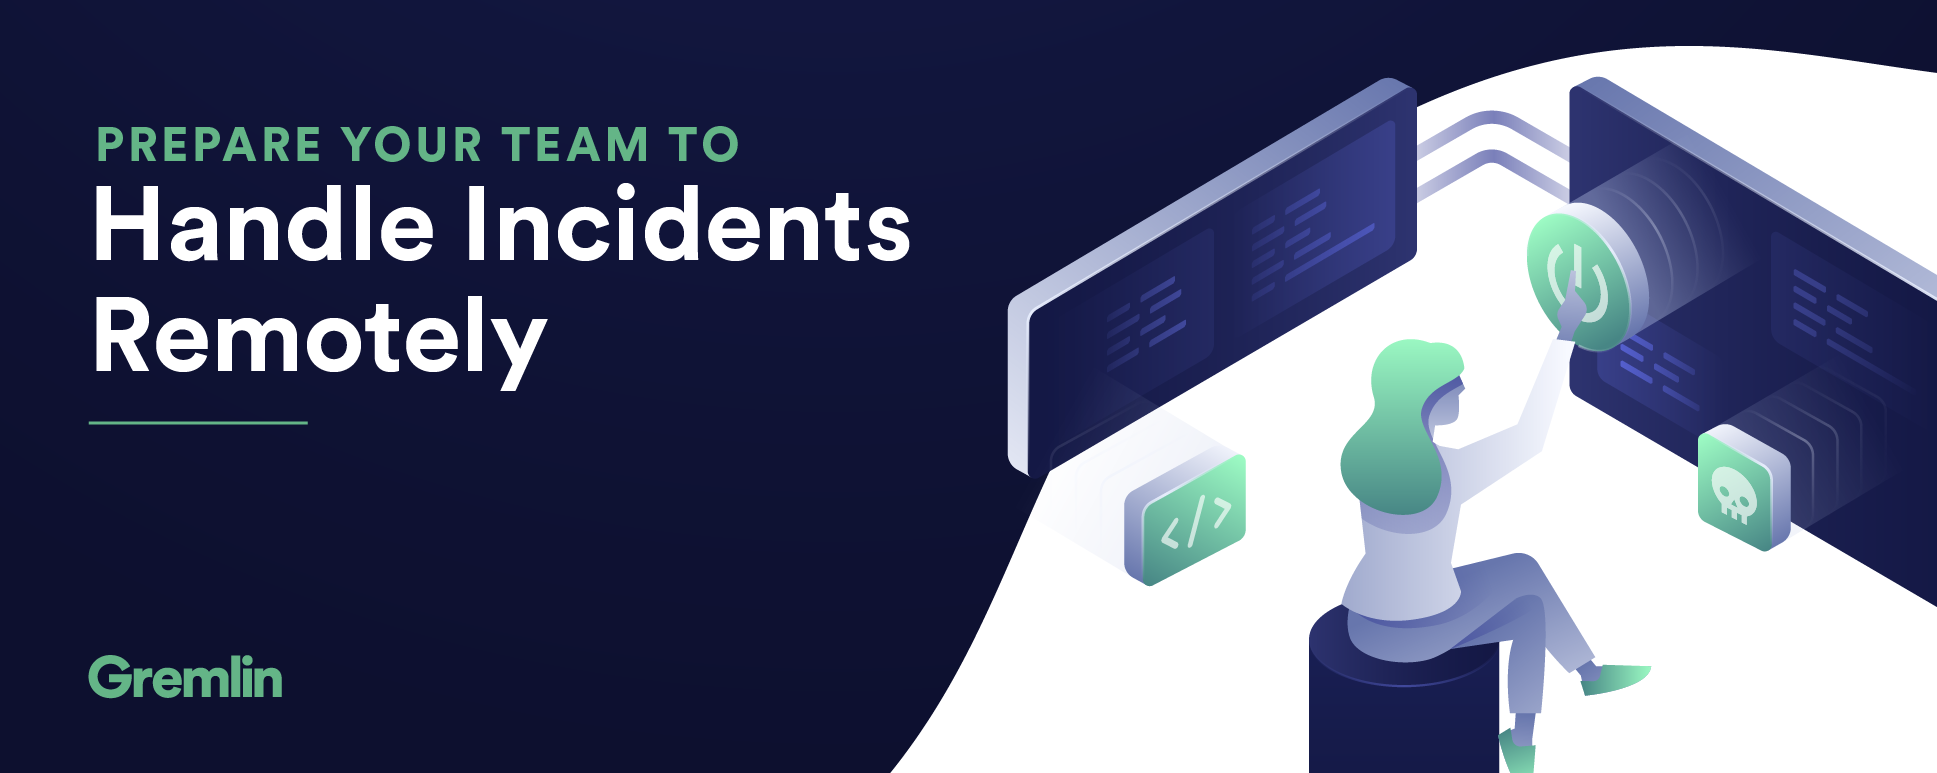 Prepare your team to handle incidents remotely